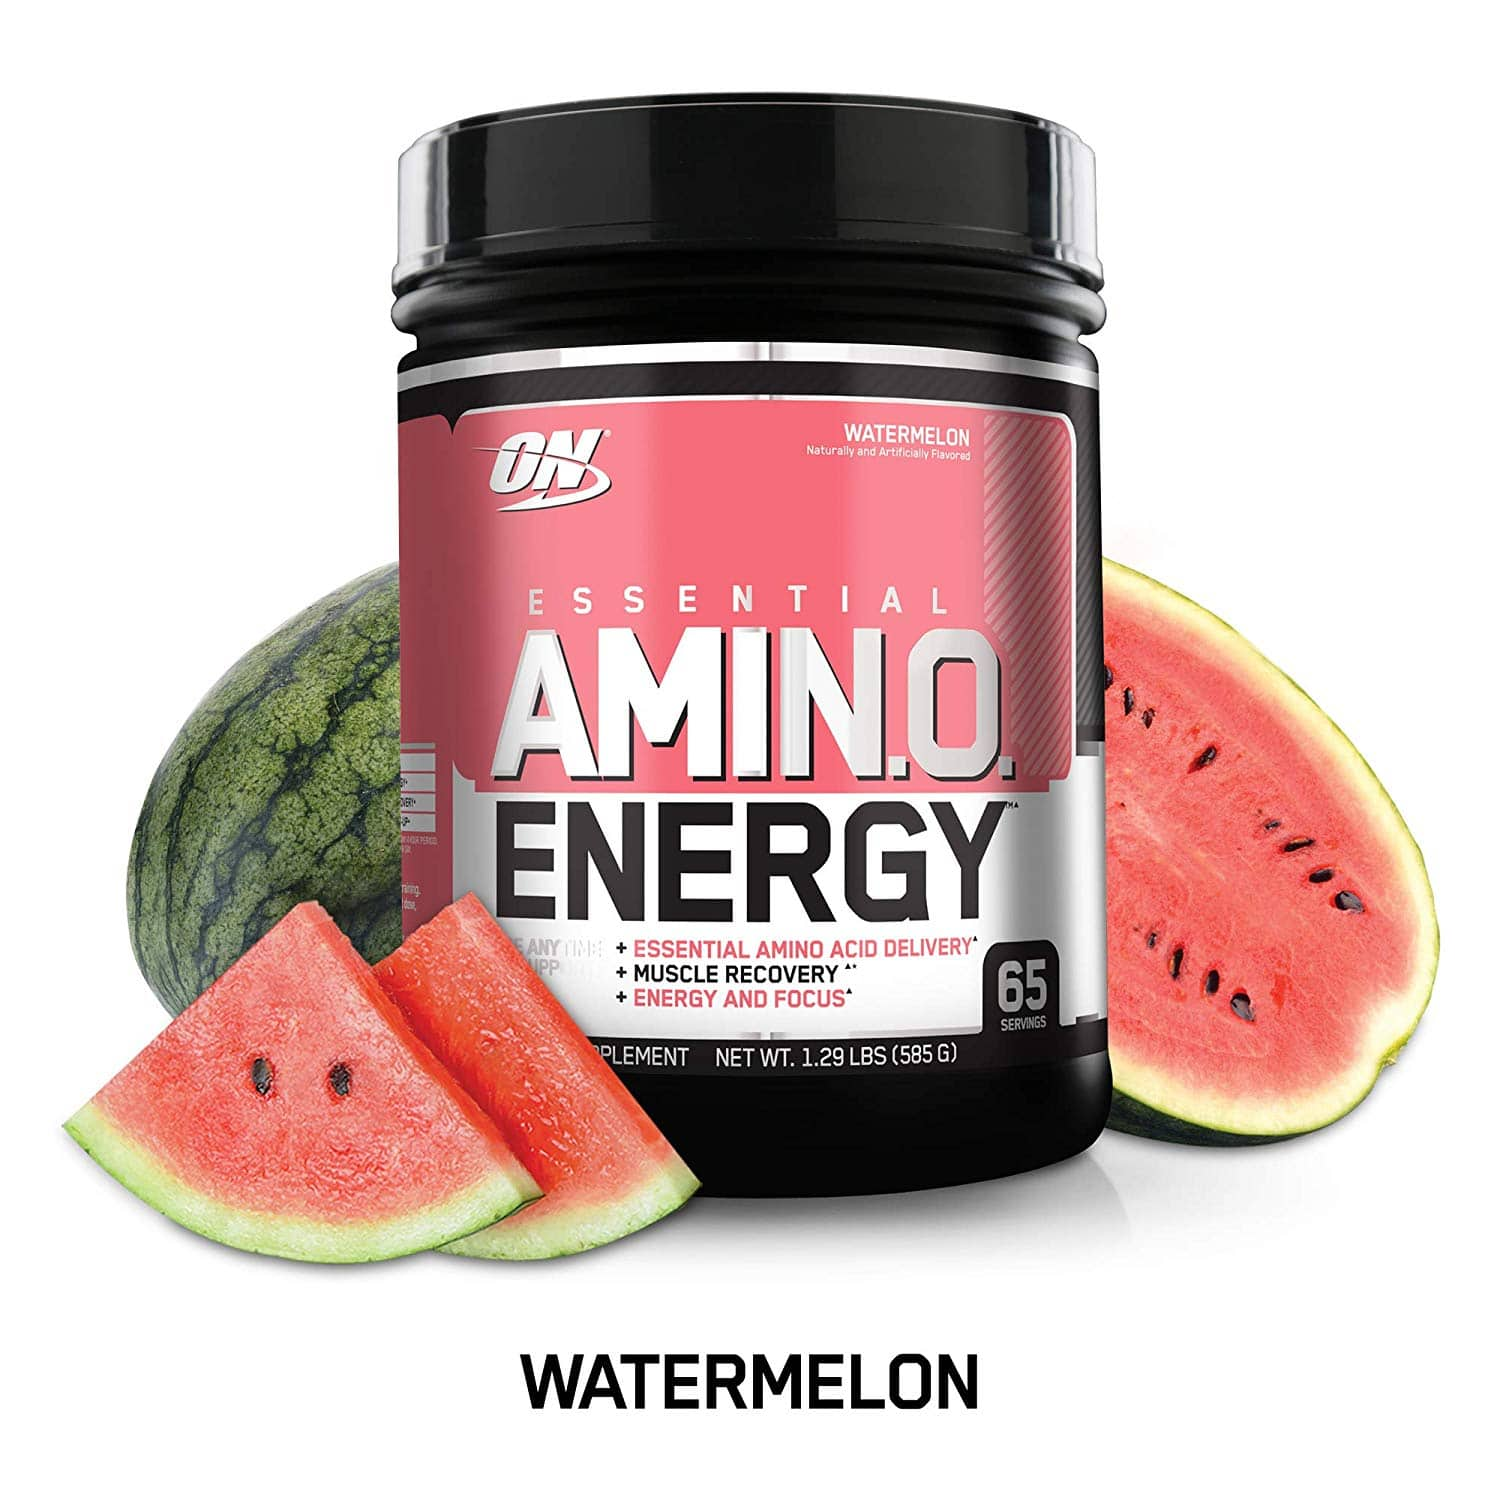 65-Servings Optimum Nutrition Amino Energy (Watermelon) $19.90 w/ S&S & More + Free S&H